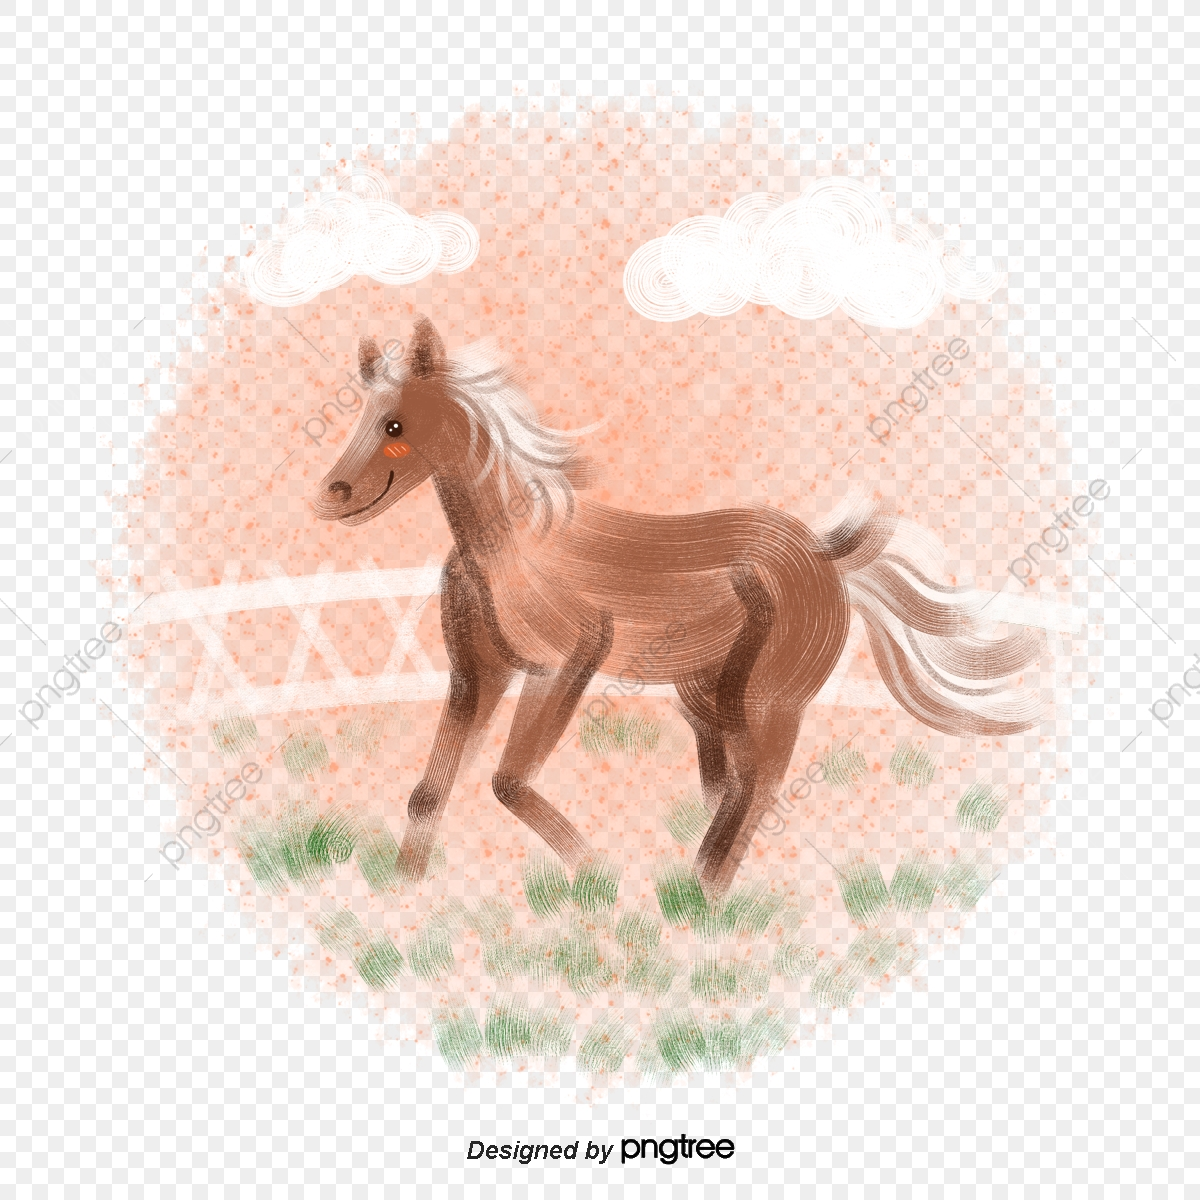 Pencil Hand Drawn Grassland Running Horse Lovely Running Color Pencil Png Transparent Clipart Image And Psd File For Free Download